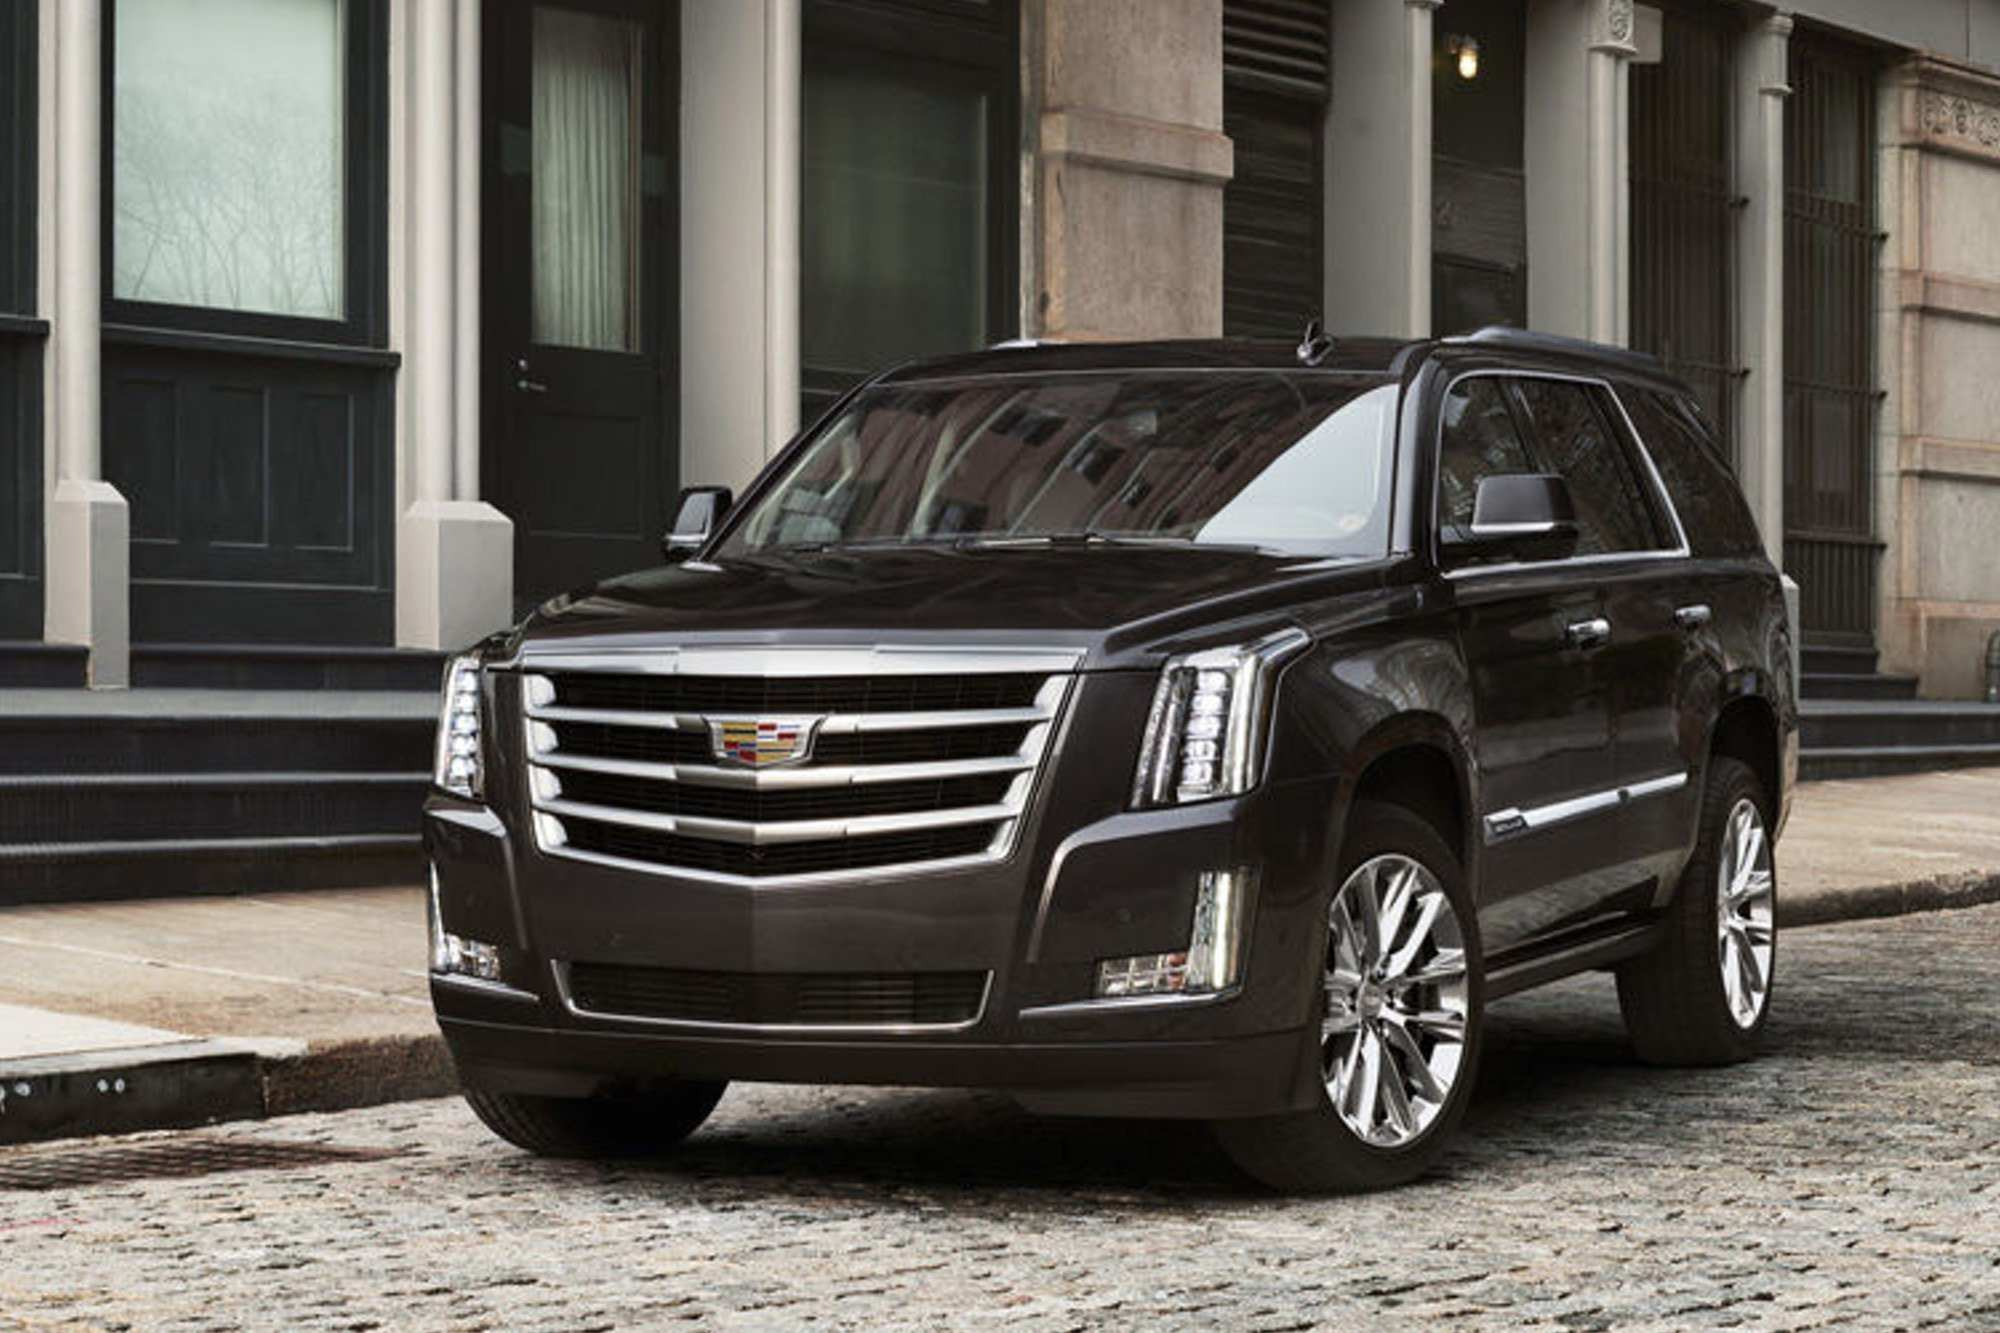 85 Best Review 2020 Escalade Exterior by 2020 Escalade